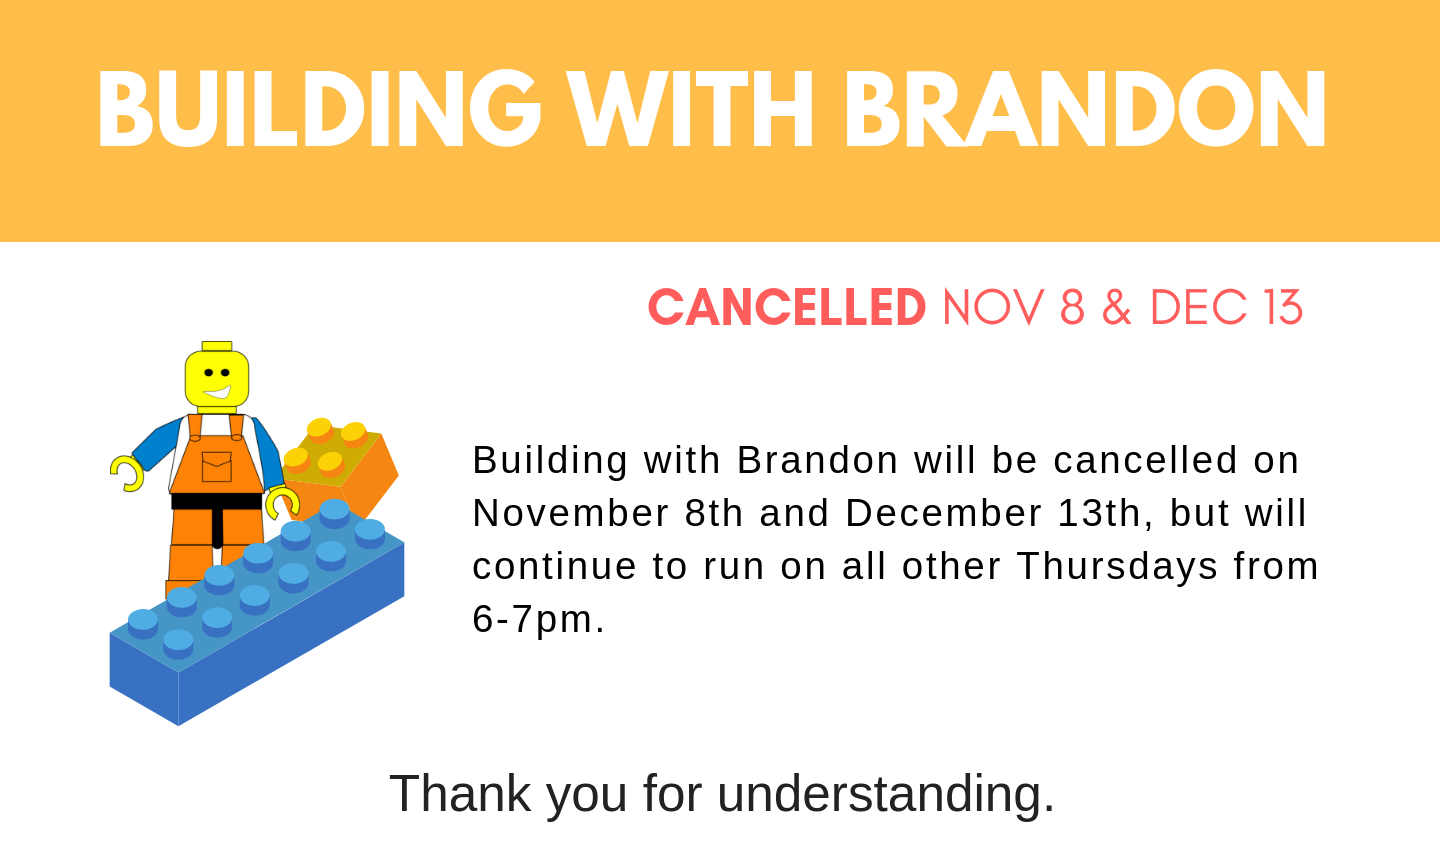 Building with Brandon Cancelled Nov 8 & Dec 13